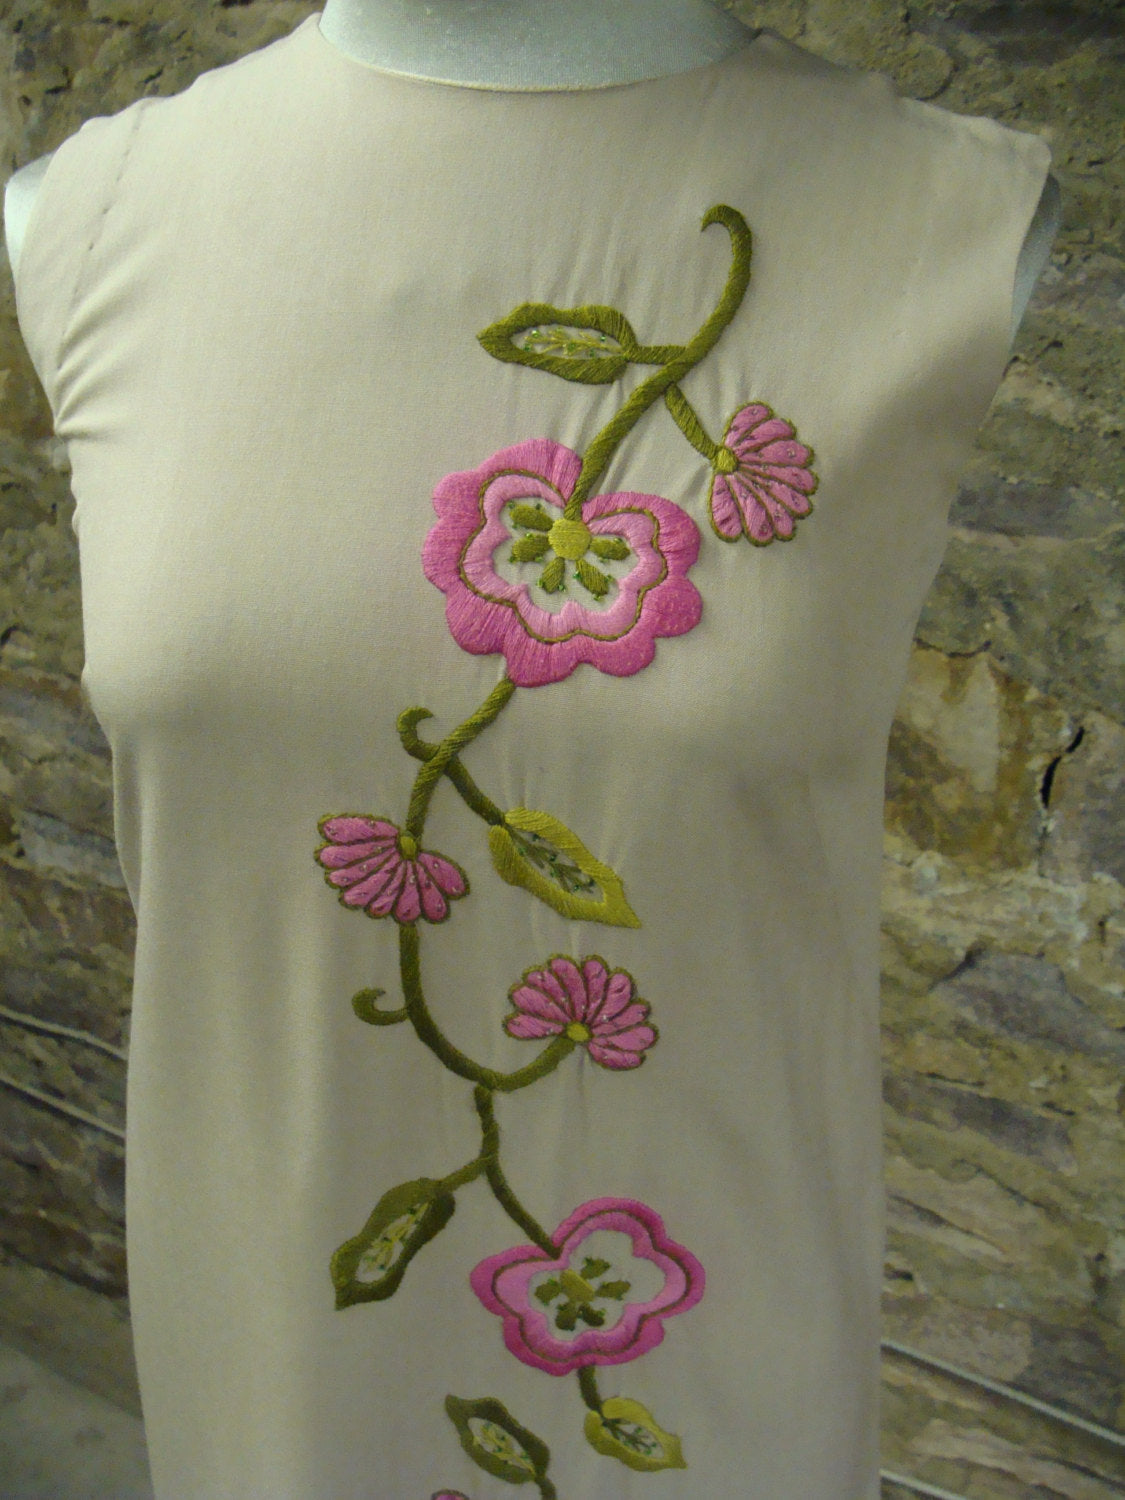 BEIGE SHIFT DRESS with embroidered flower design vintage 1960's 60's xs (A2)